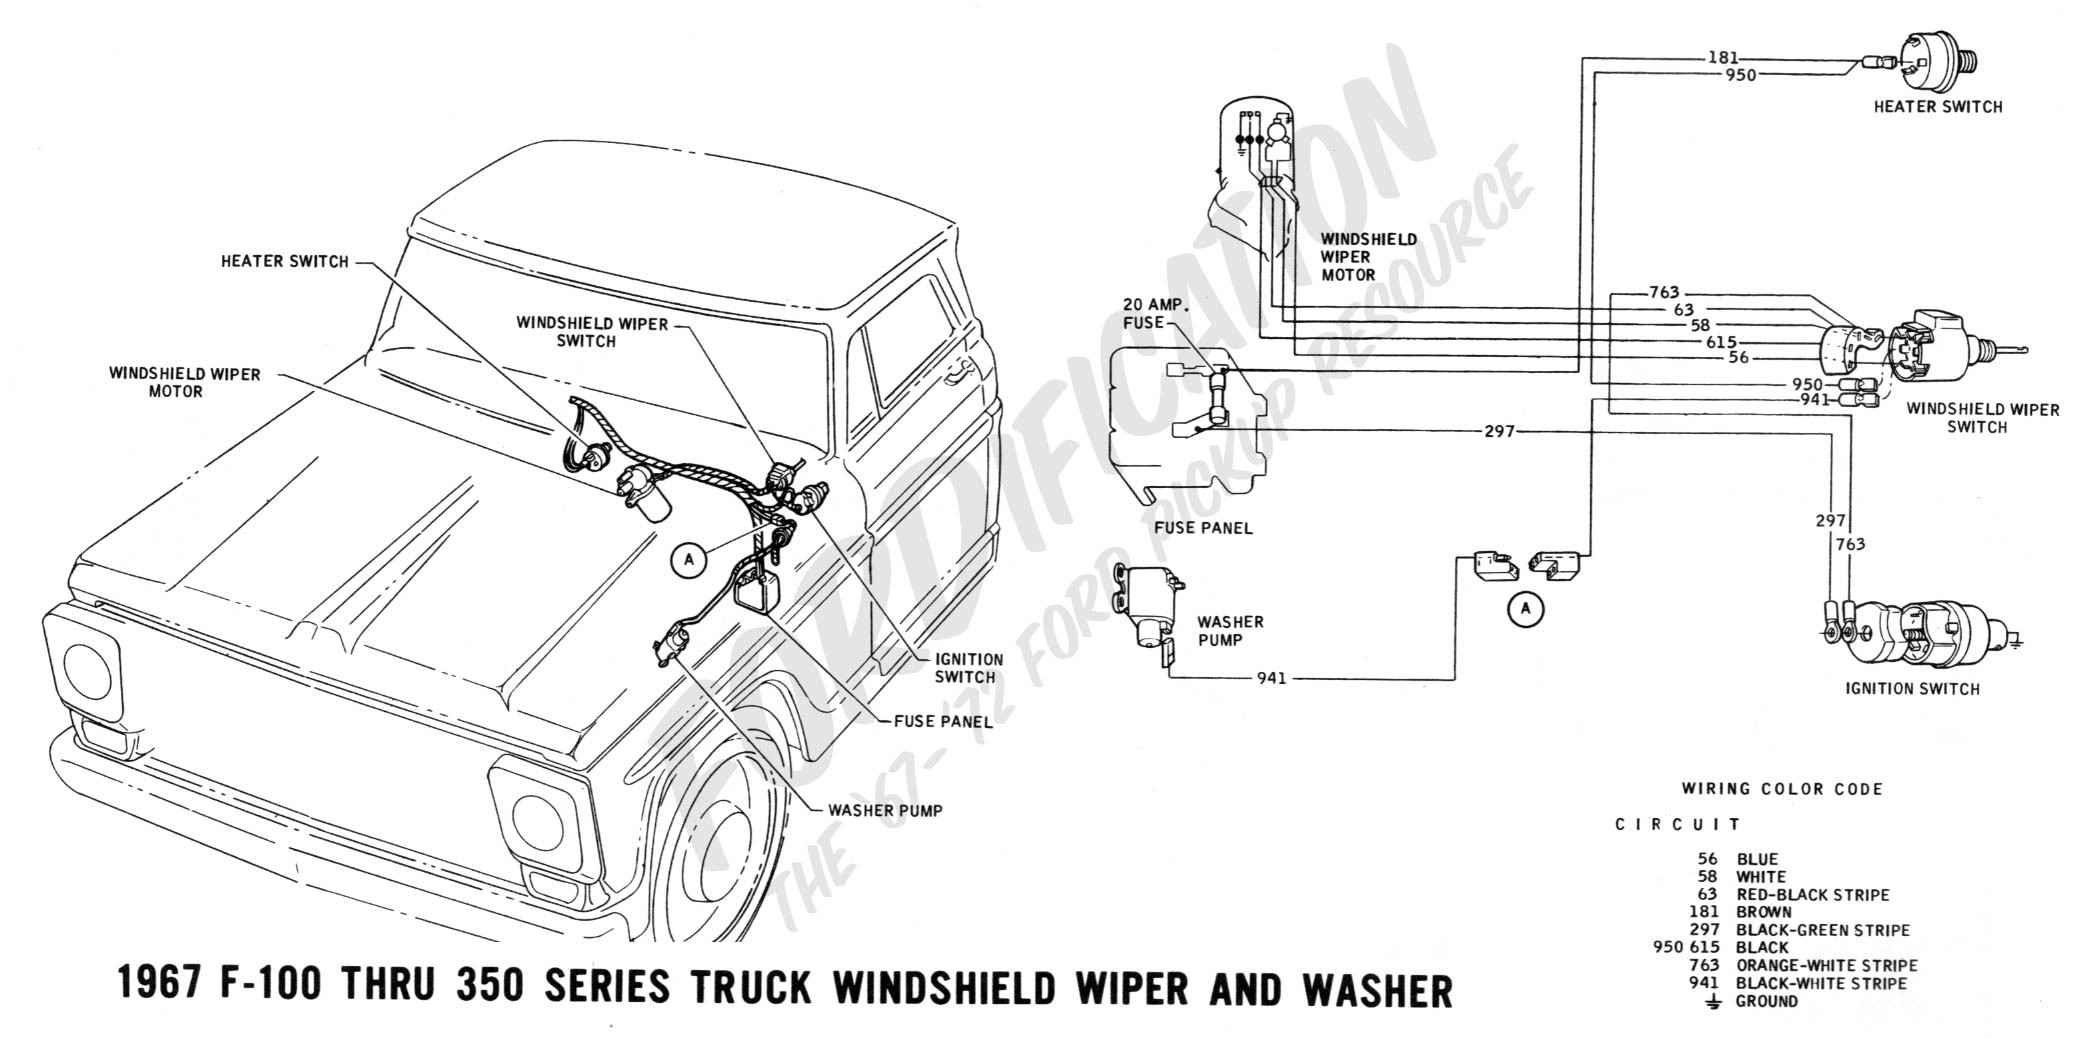 1965 chevy c10 wiper motor wiring diagram  u2022 wiring diagram